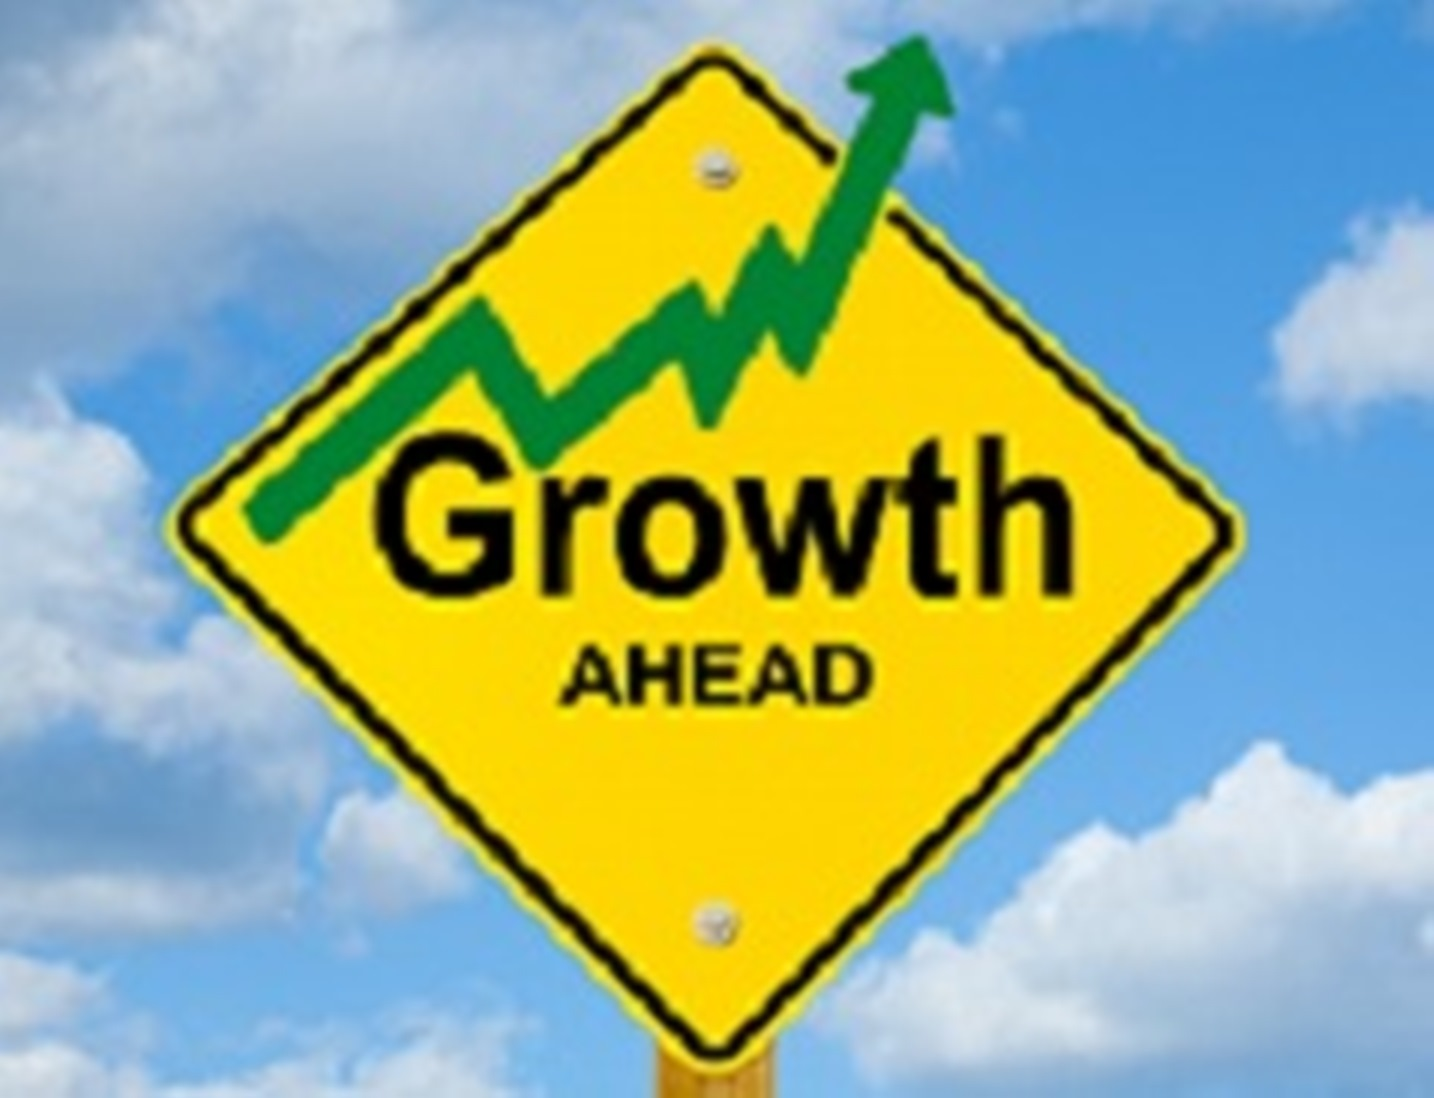 Tech M&A Monthly: 10 Ways to Increase Company Value - #3 & 4